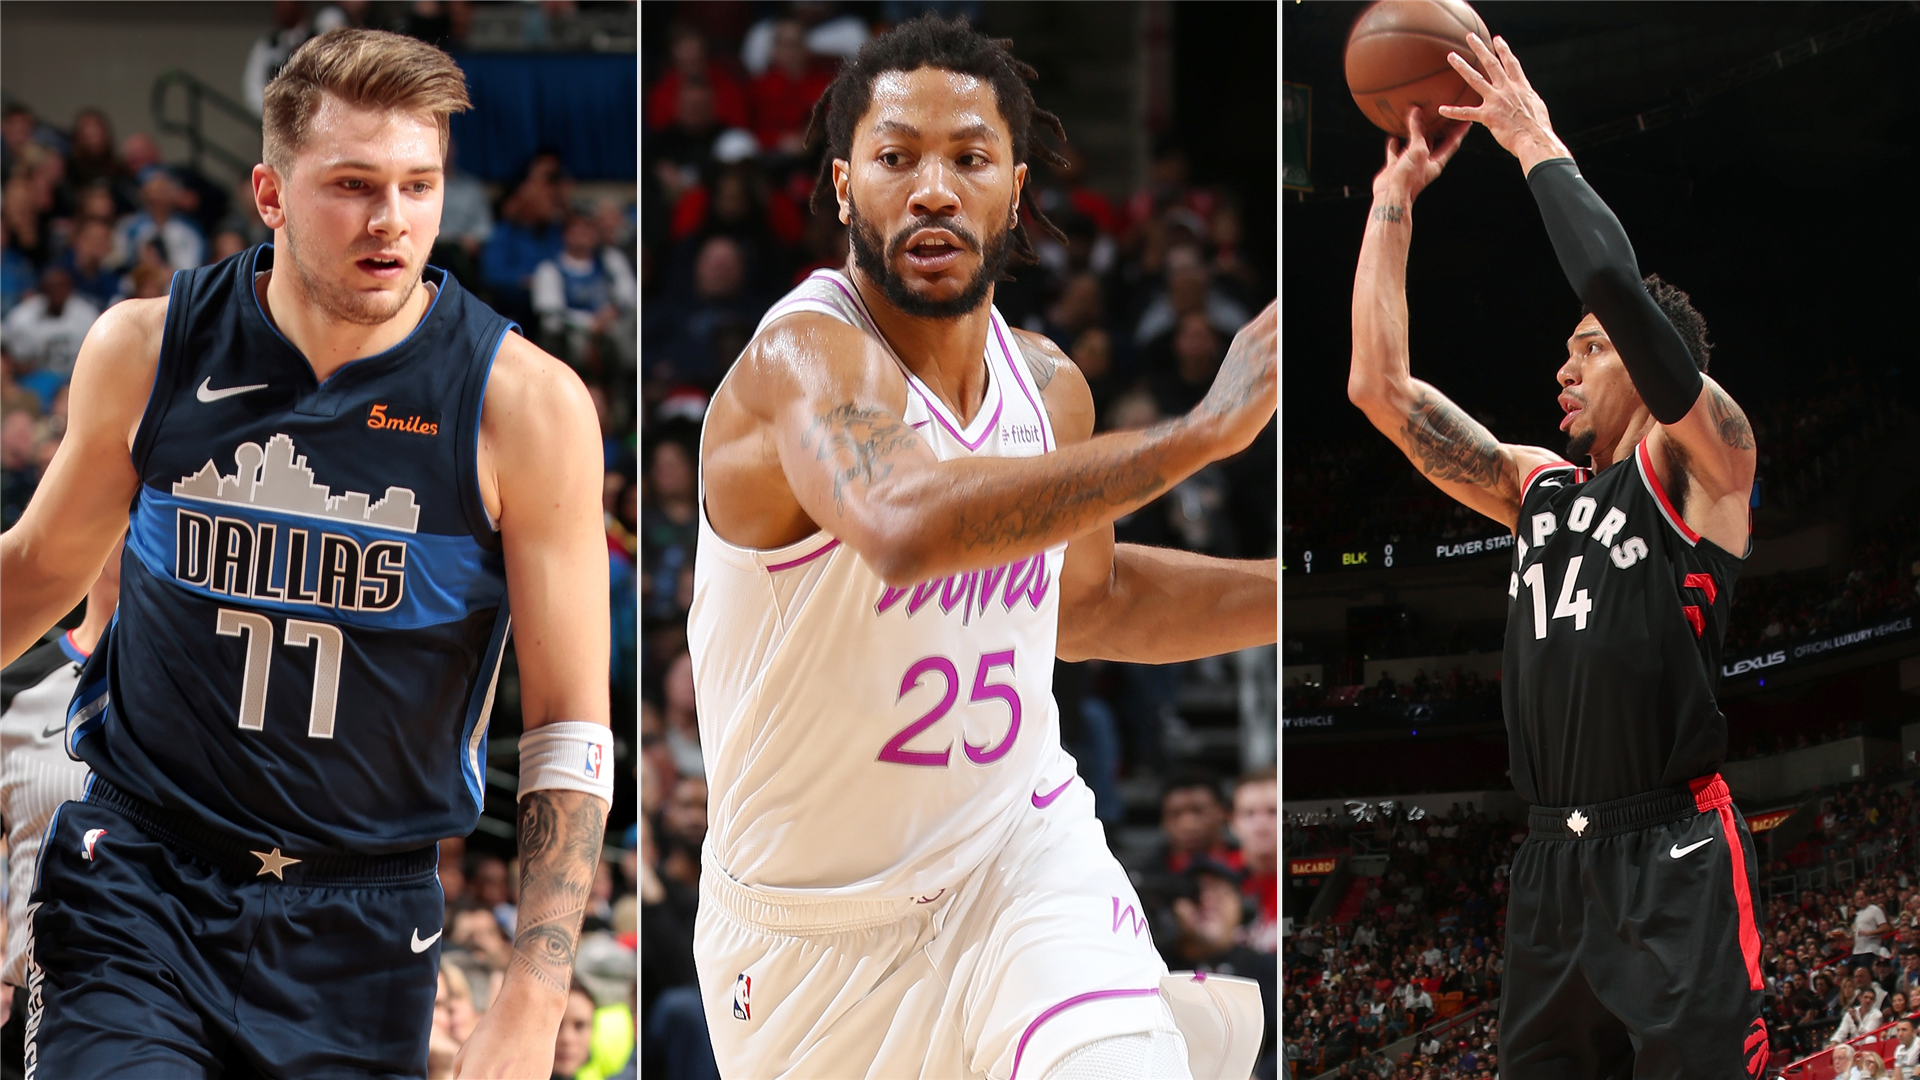 Nba Scores And Highlights Doncic Leads Mavericks Past Pelicans D Rose Gets Mvp Chants Danny Green Hits Game Winner Nba Com India The Official Site Of The Nba